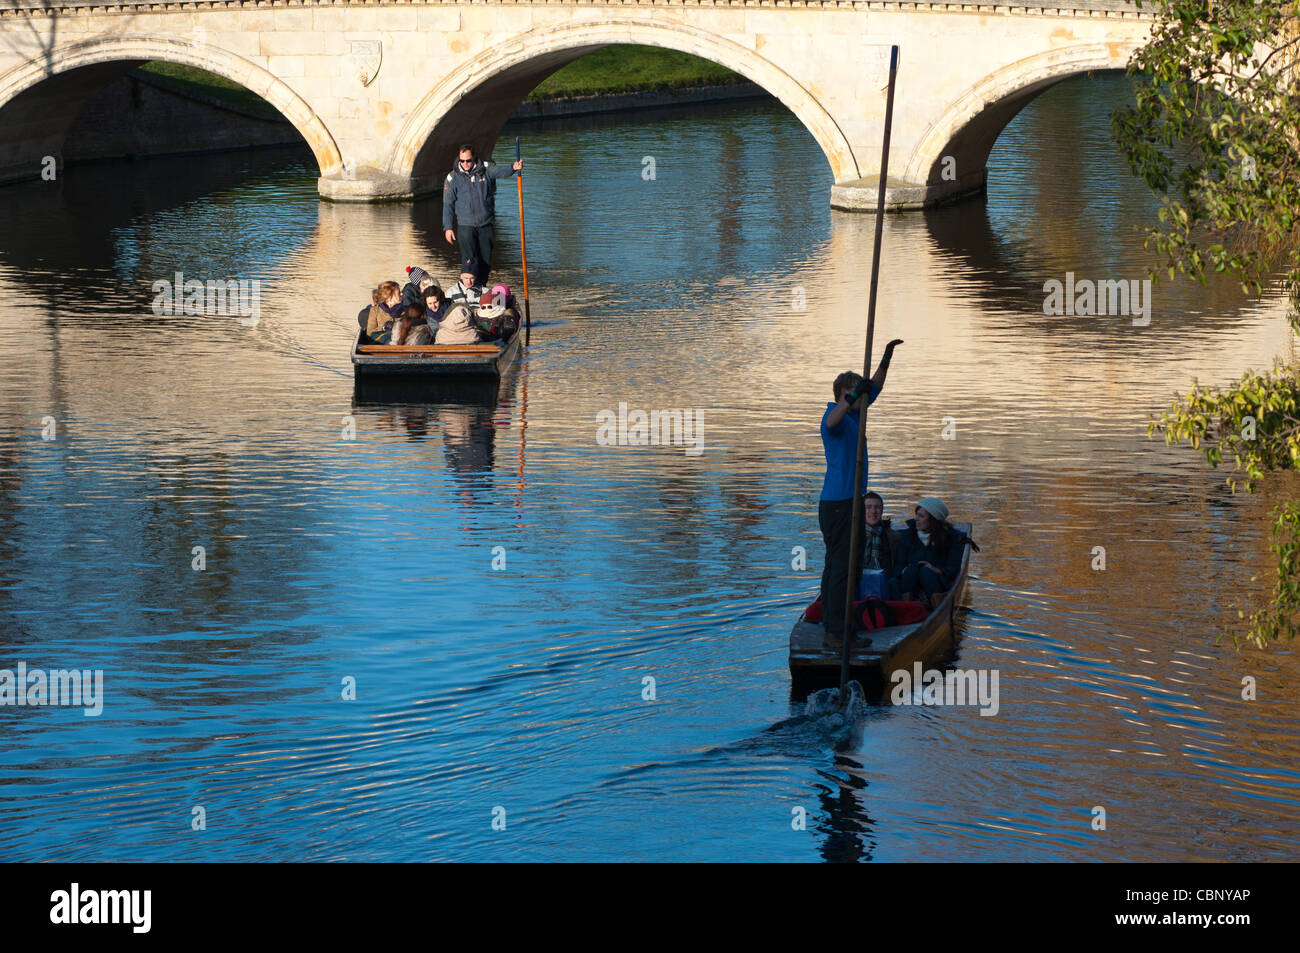 Punting silhouette on river Cam, Cambridge England. - Stock Image